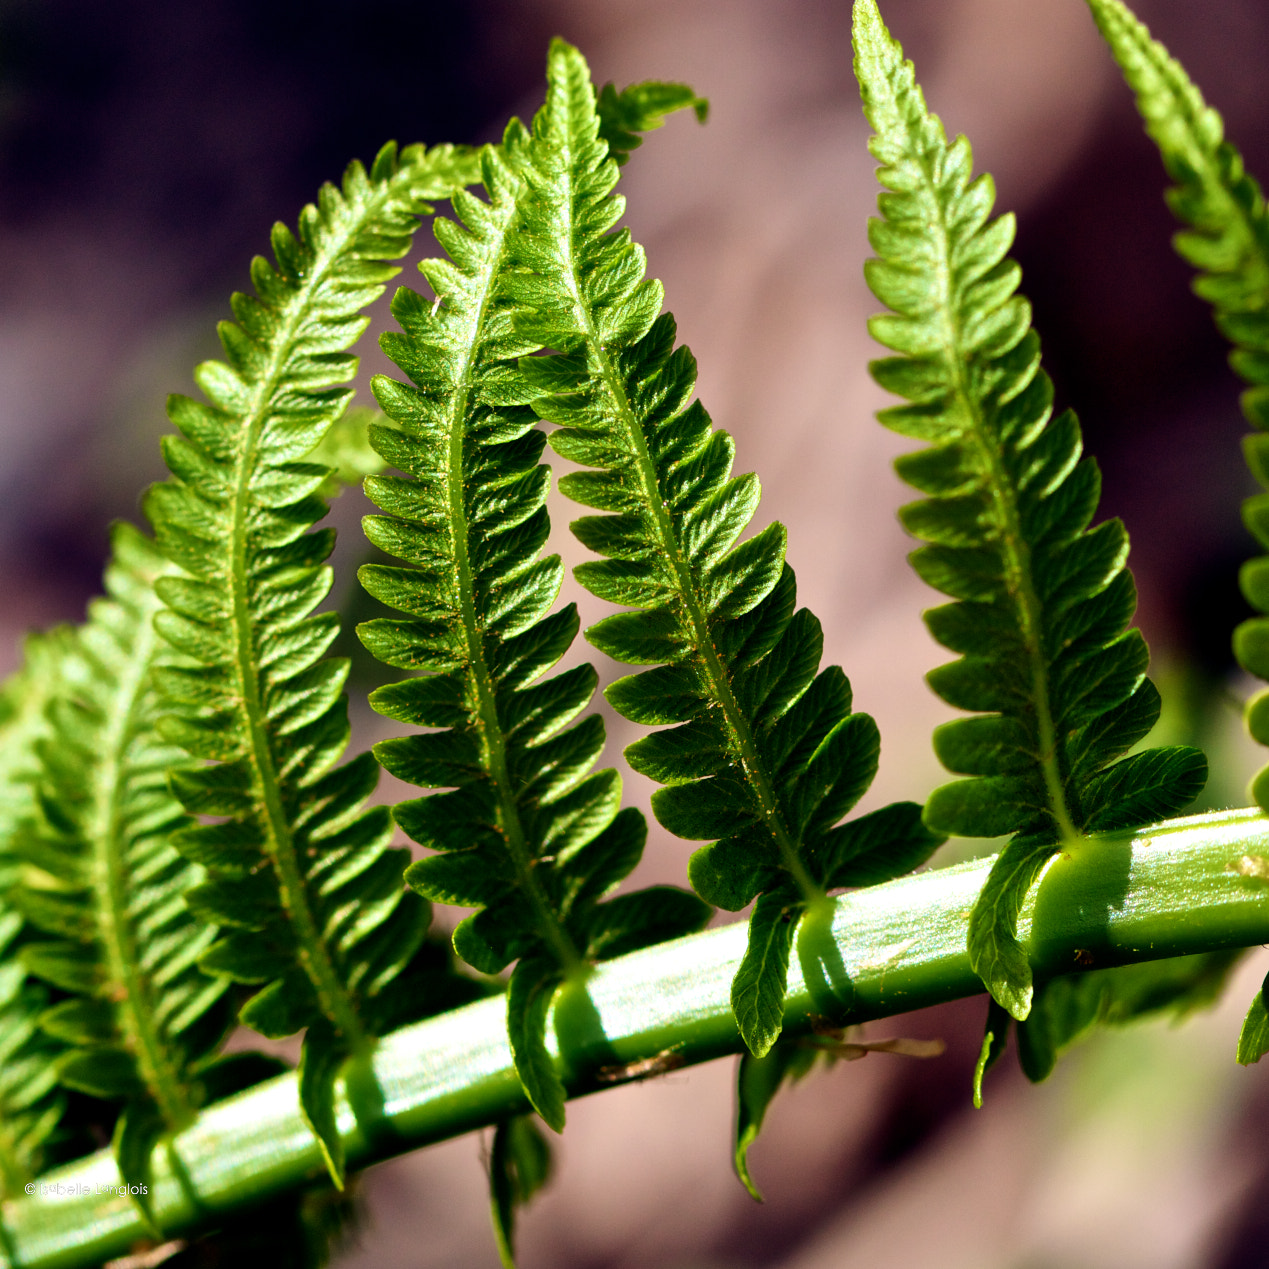 Photograph Fern close-up by Isabelle Langlois on 500px